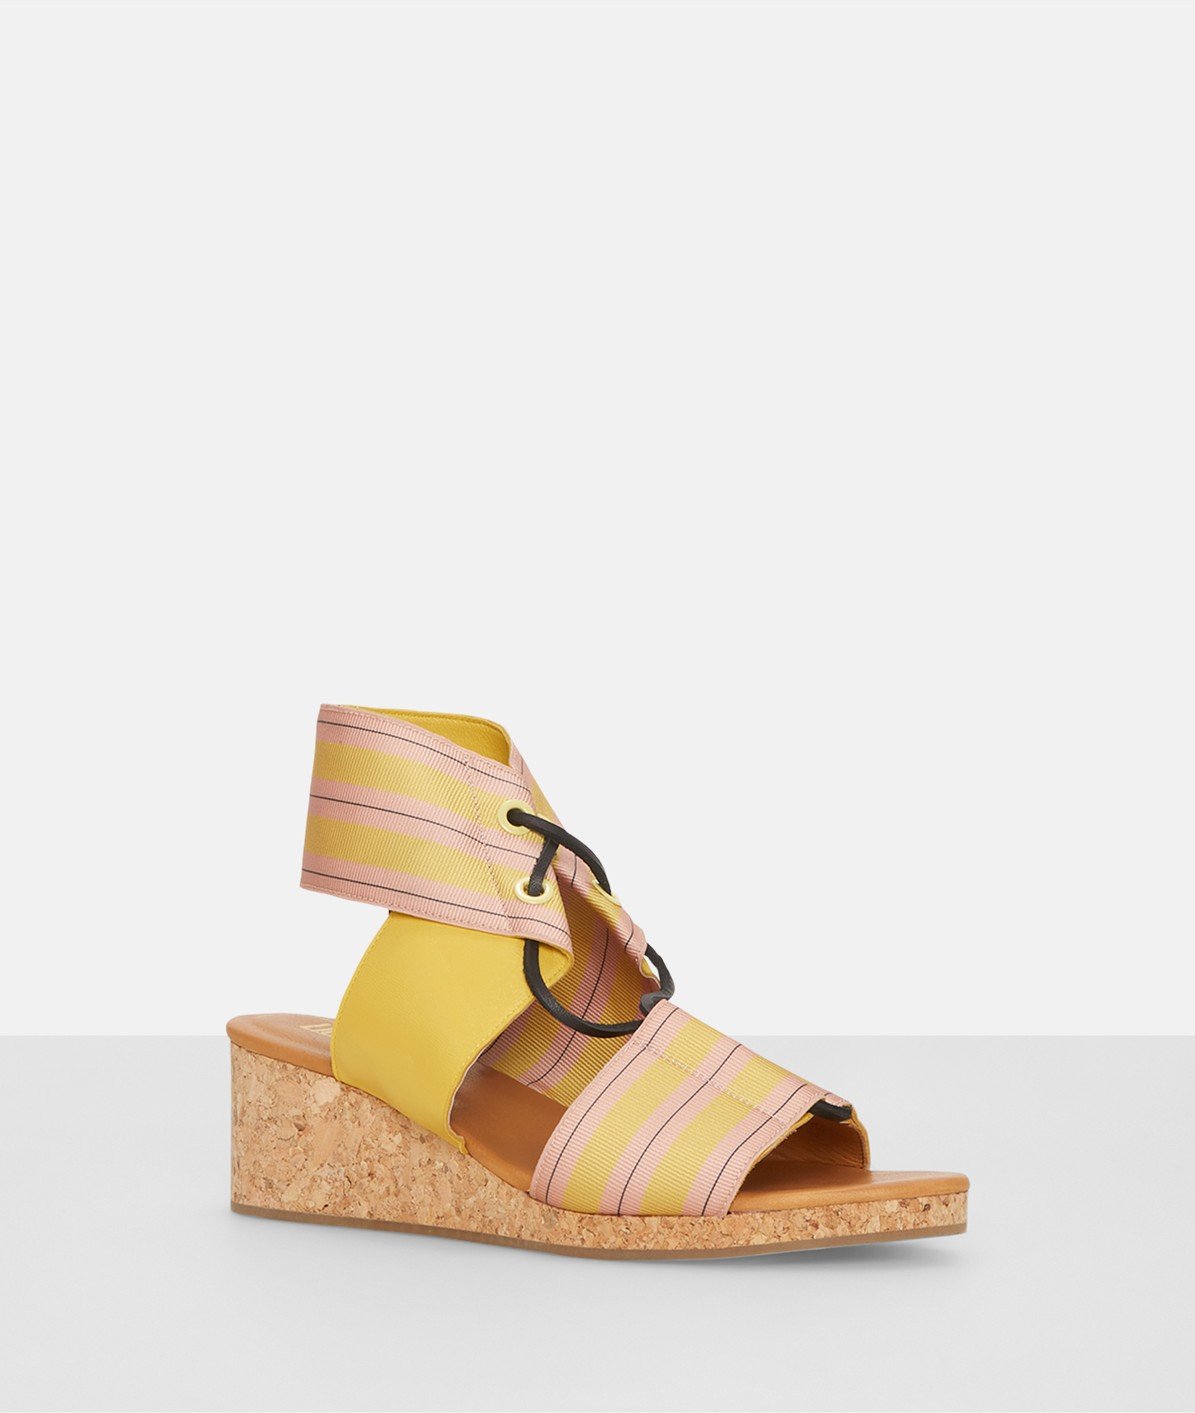 Striped wedge sandals from liebeskind